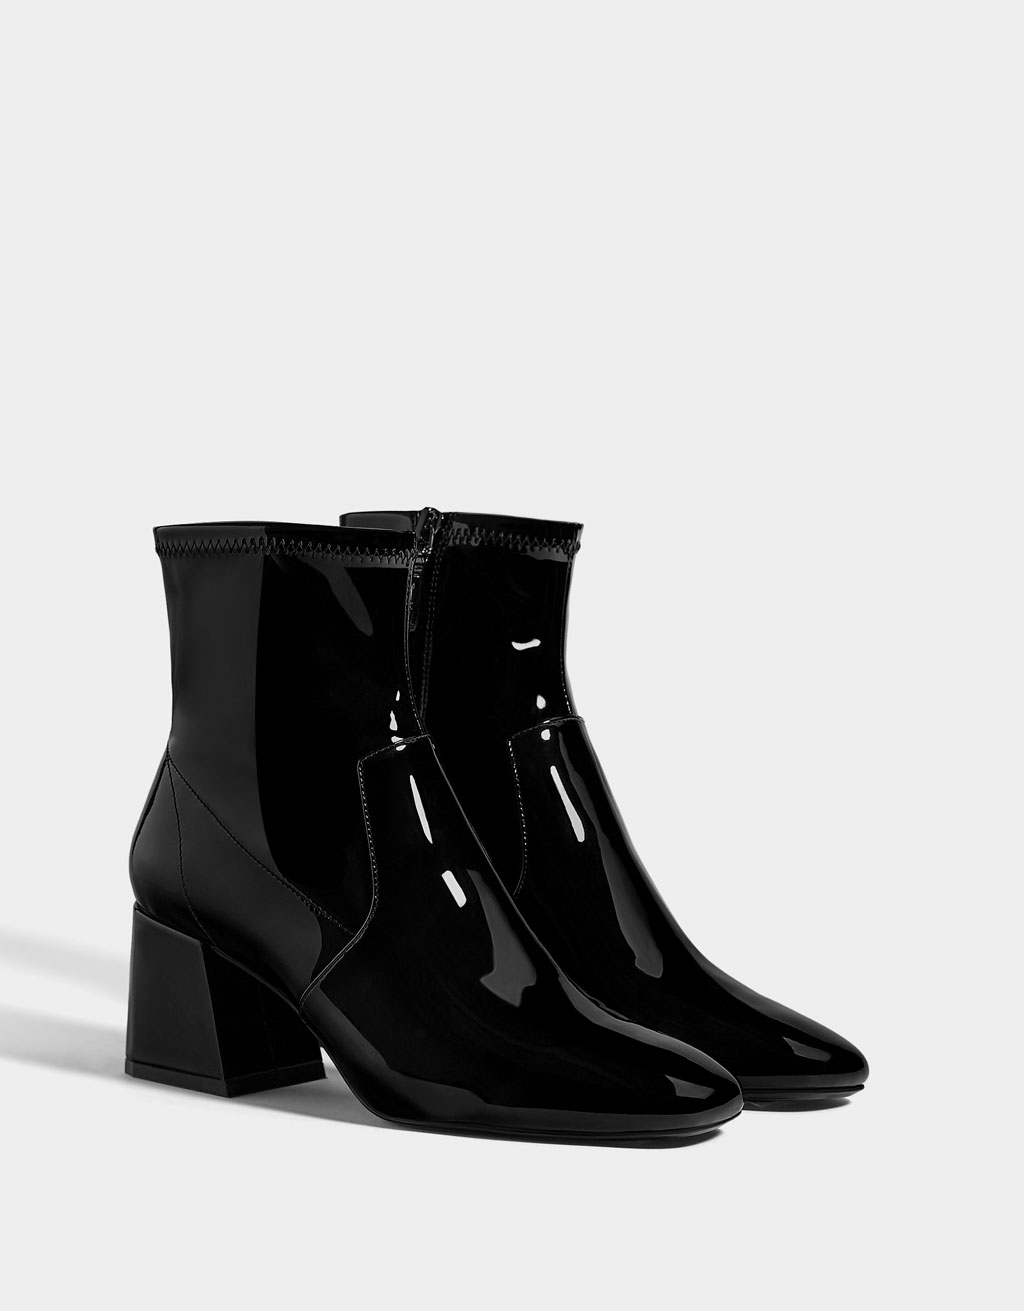 Mid-heel patent finish ankle boots